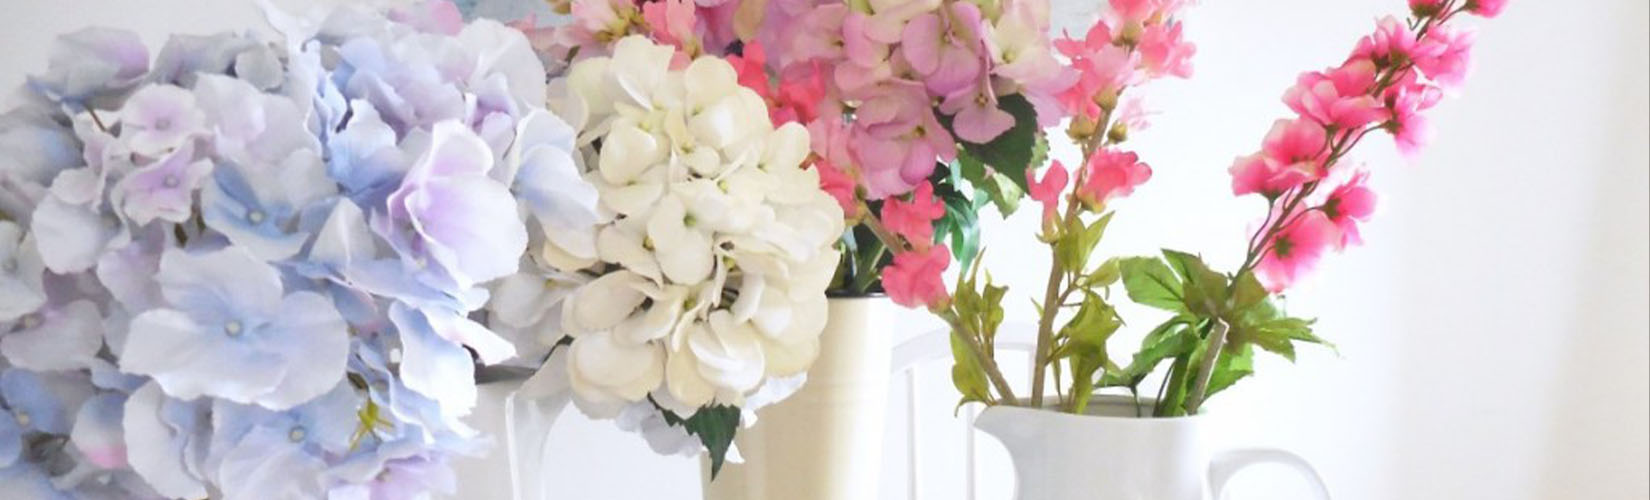 Artificial Hydrangea Flowers Styled By The Ordinary Lovely